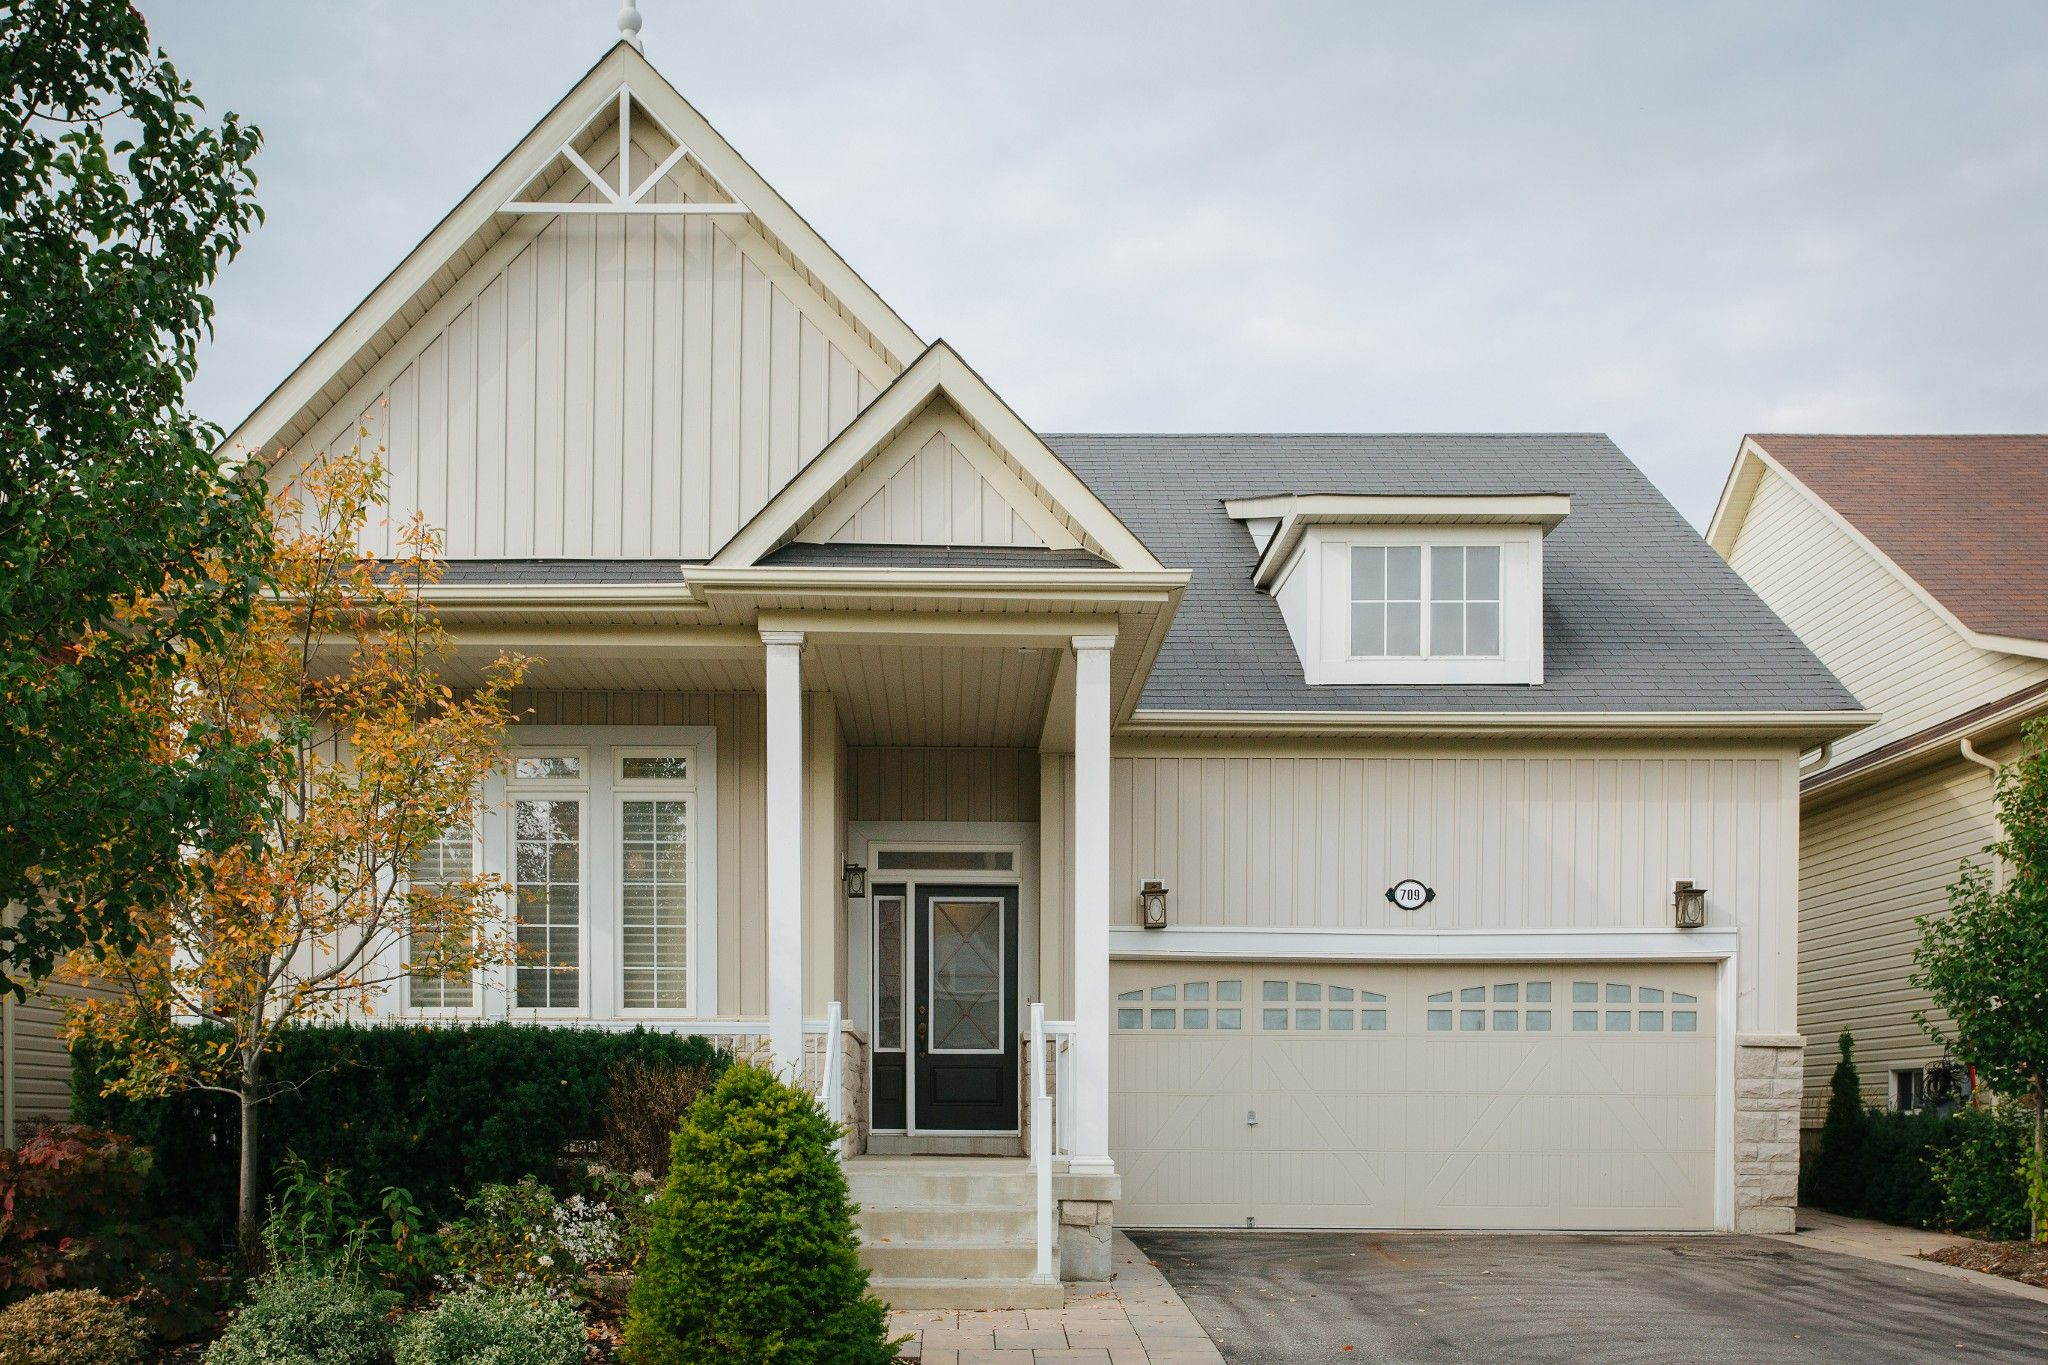 Main Photo: 709 Prince Of Wales Drive in Cobourg: House for sale : MLS®# 40031772